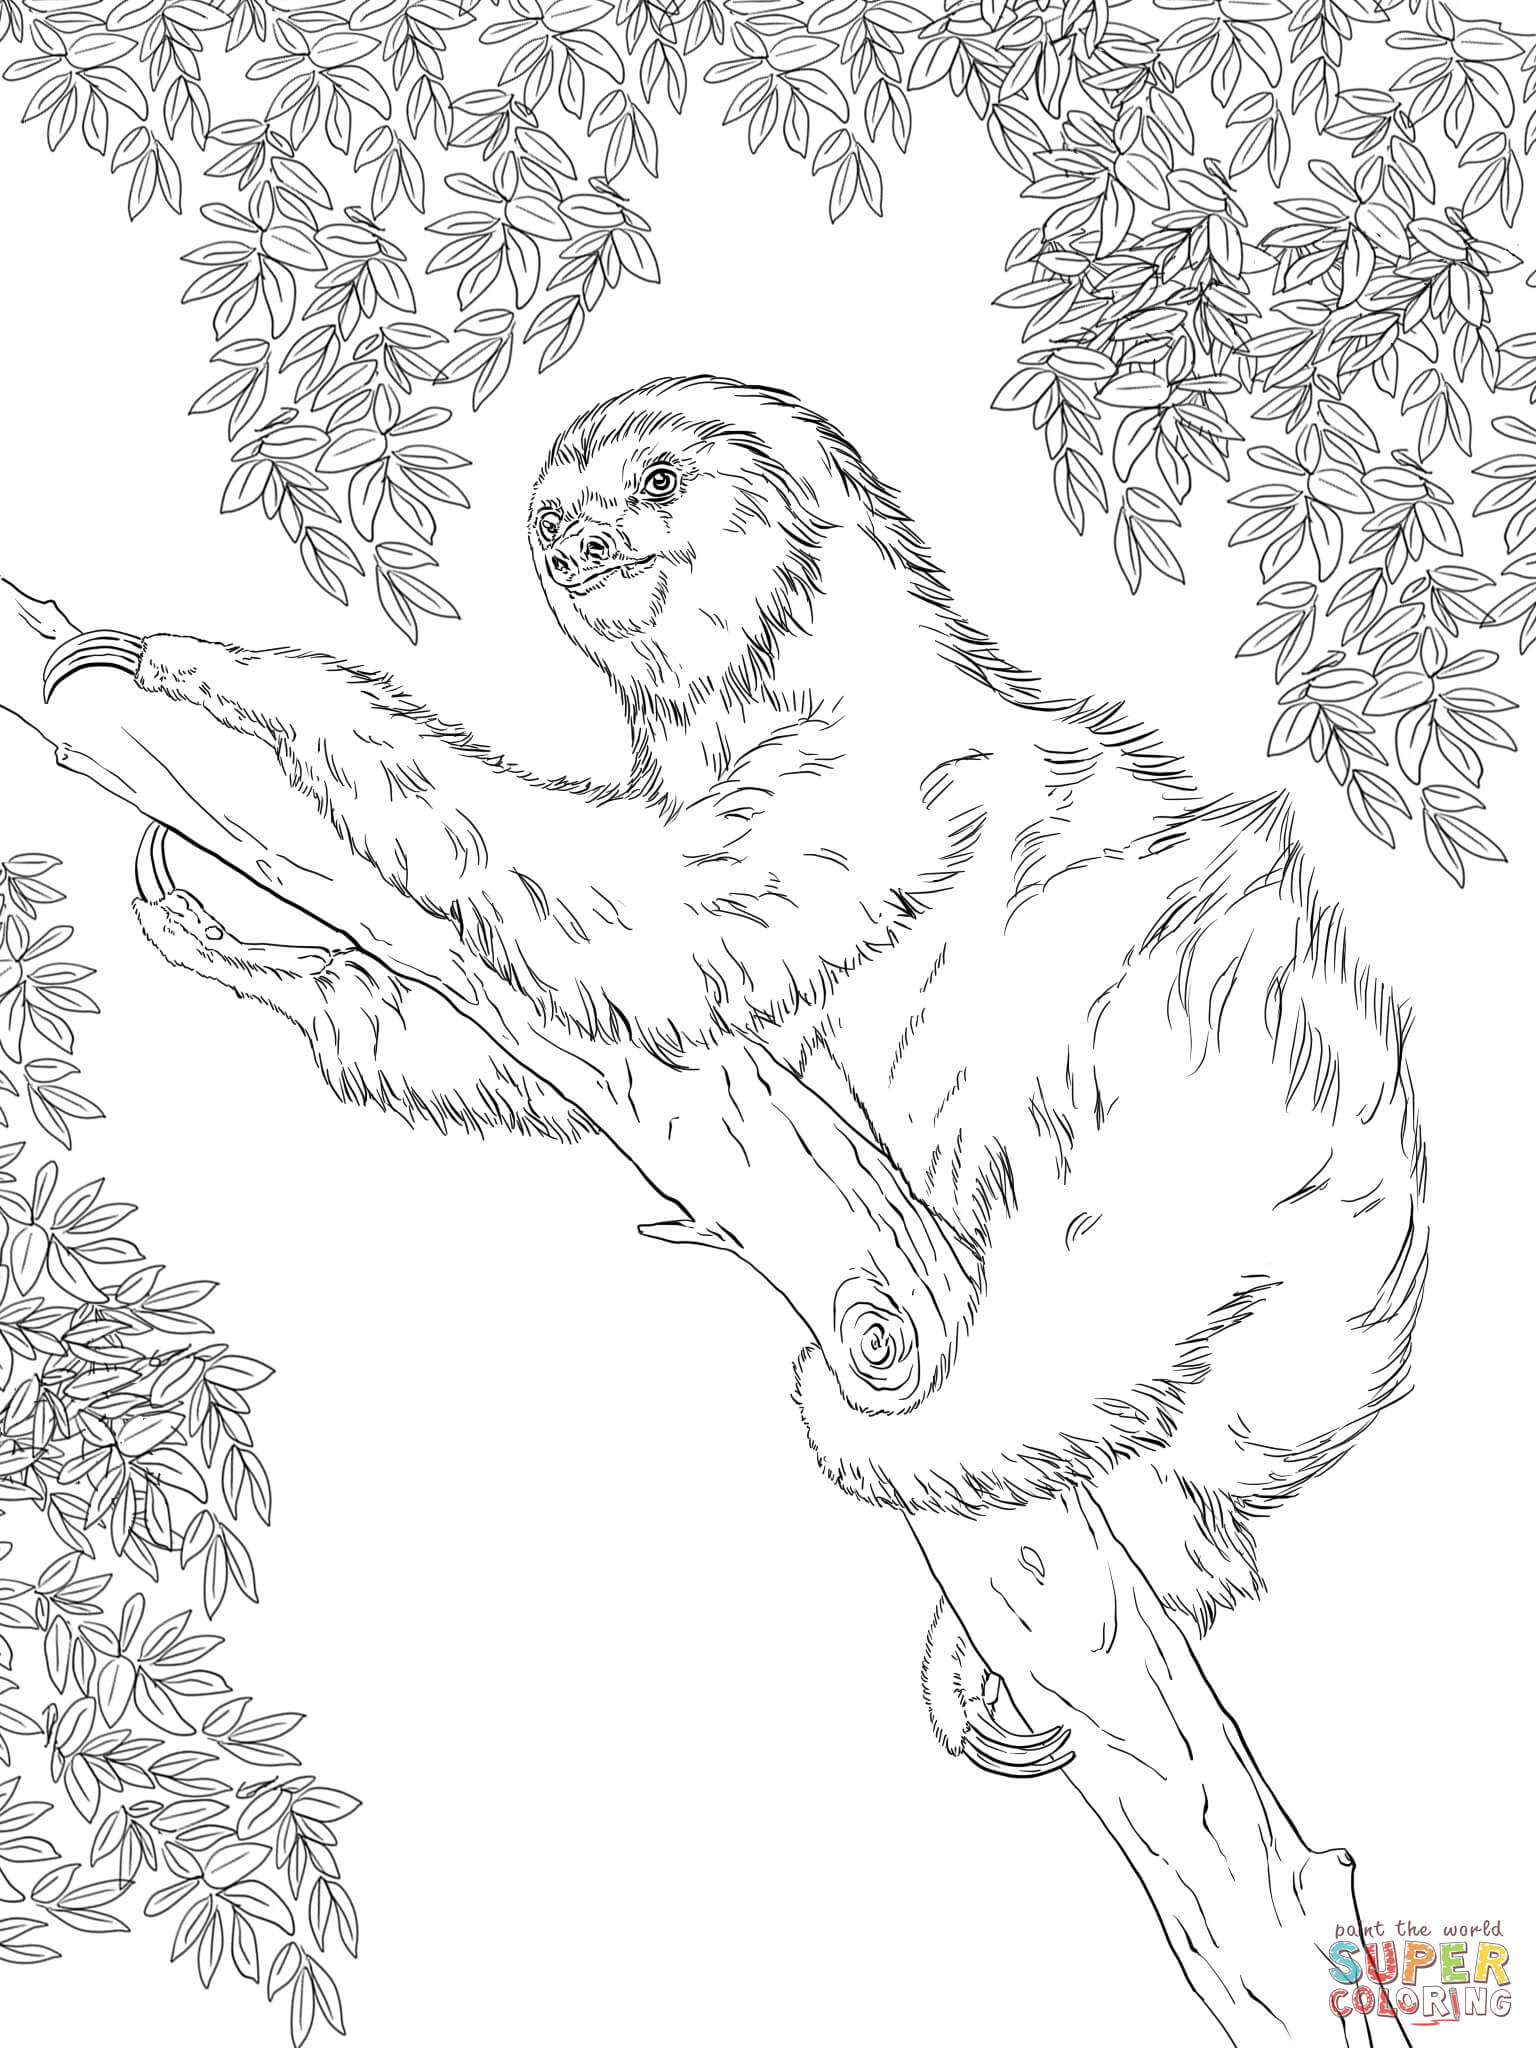 Sloth coloring #2, Download drawings